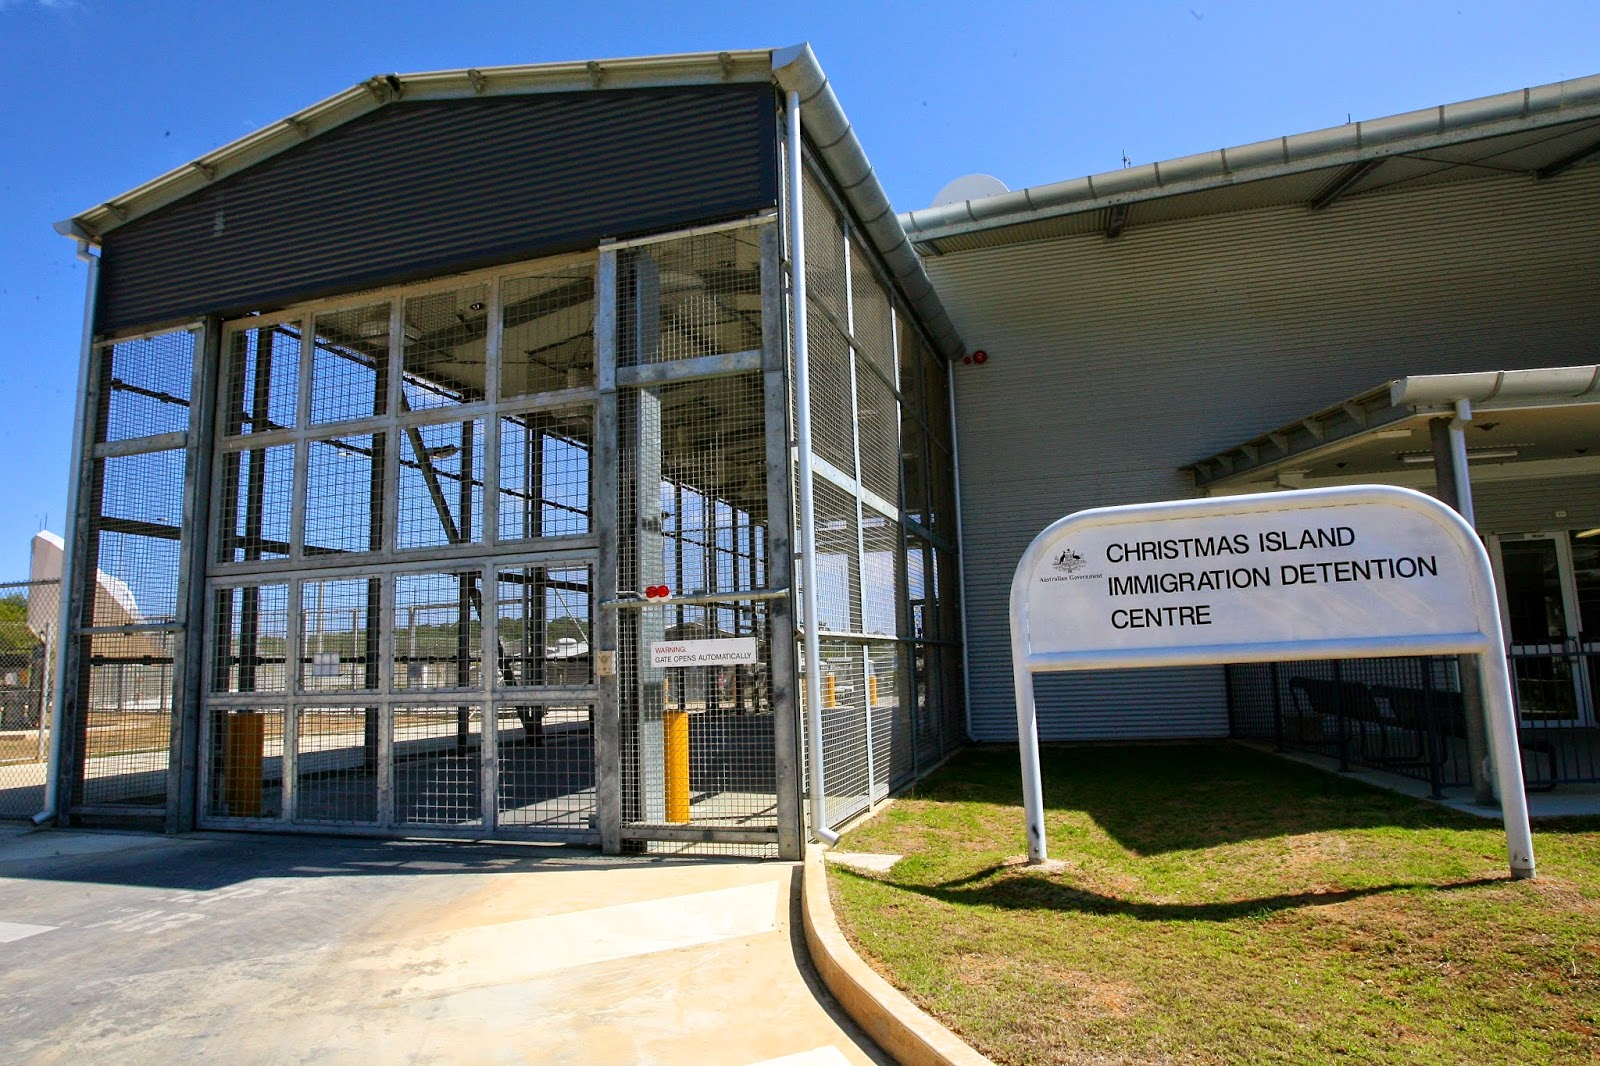 Christmas_Island_Immigration_Detention_Centre_%25285424306236%2529[1]